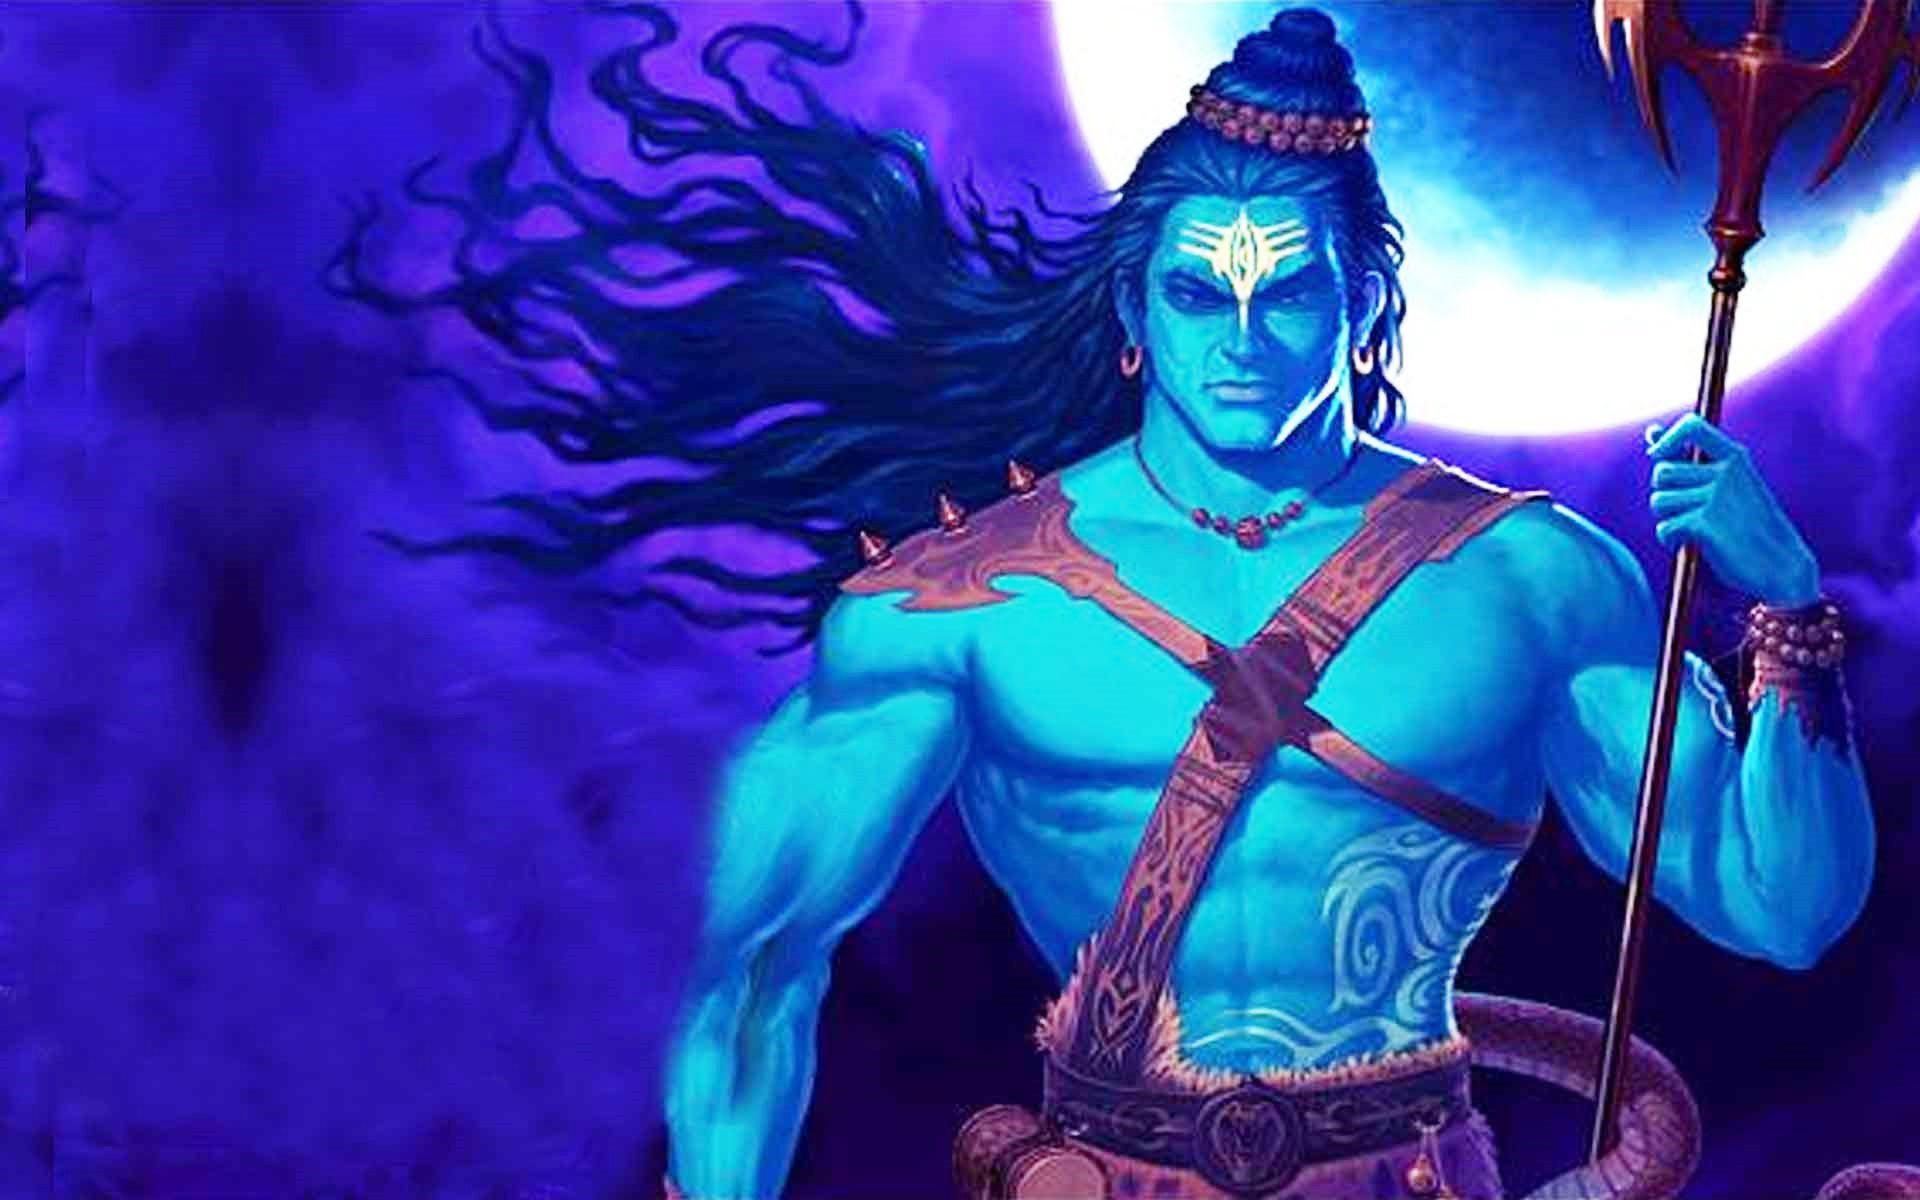 Lord Shiva Animated Full Hd Image 33168058 Compressor Onehimachal